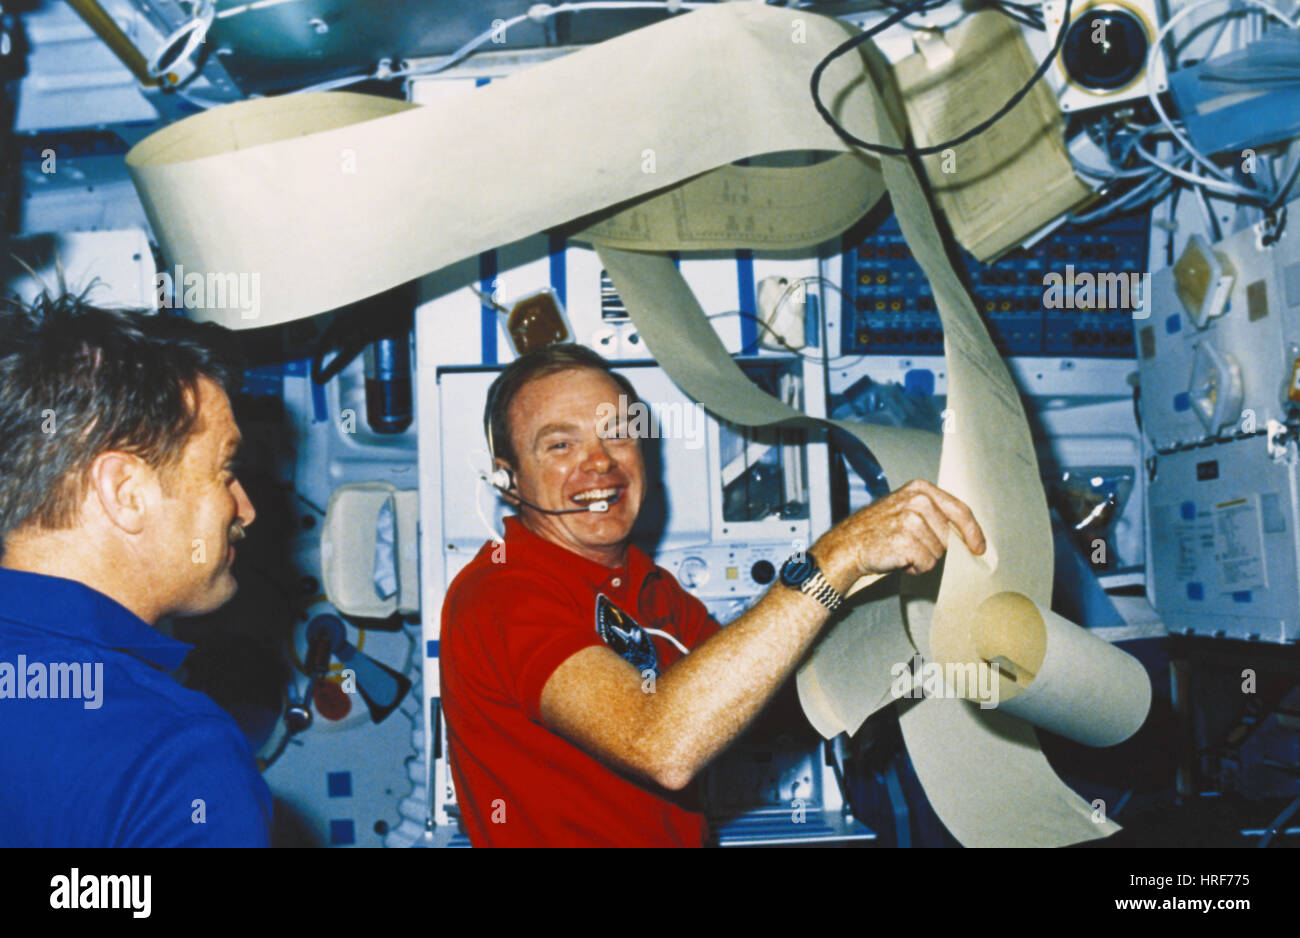 STS-51-F, Shuttle Astronauts, 1985 - Stock Image